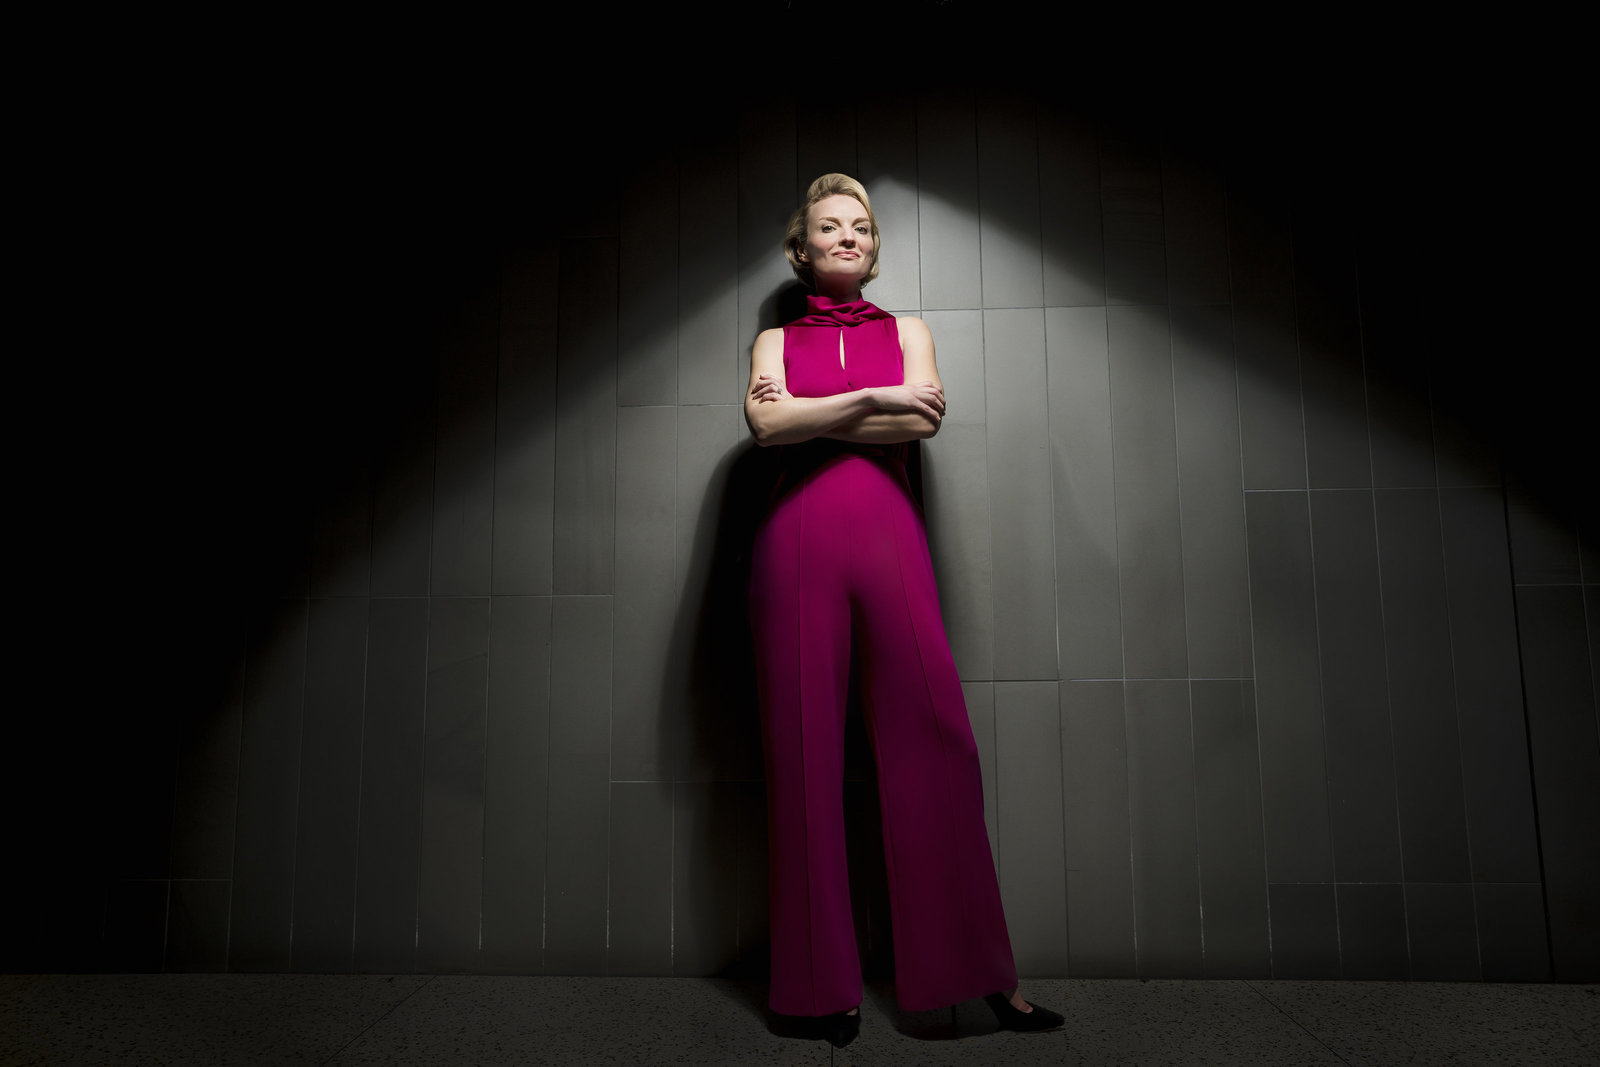 Female CEO stands in a strong pose with her arms crossed wearing a fuscia jumpsuit under dramatic lighting